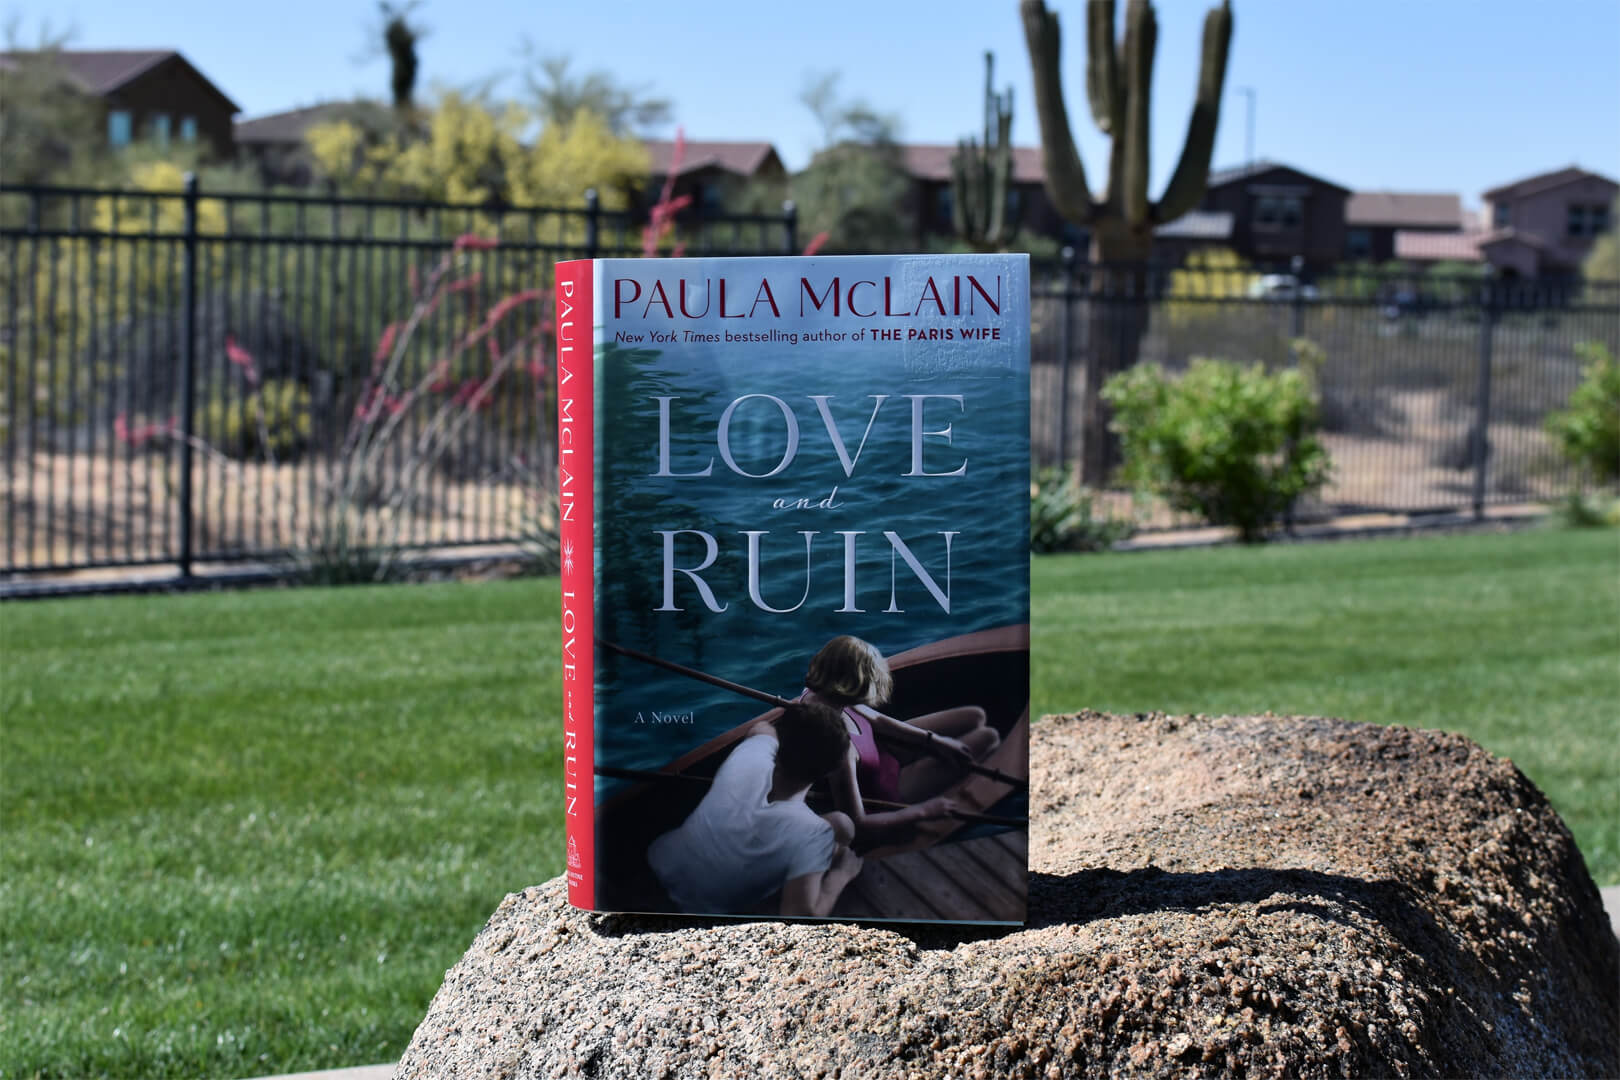 For Love And Ruin Review - Book Club Chat